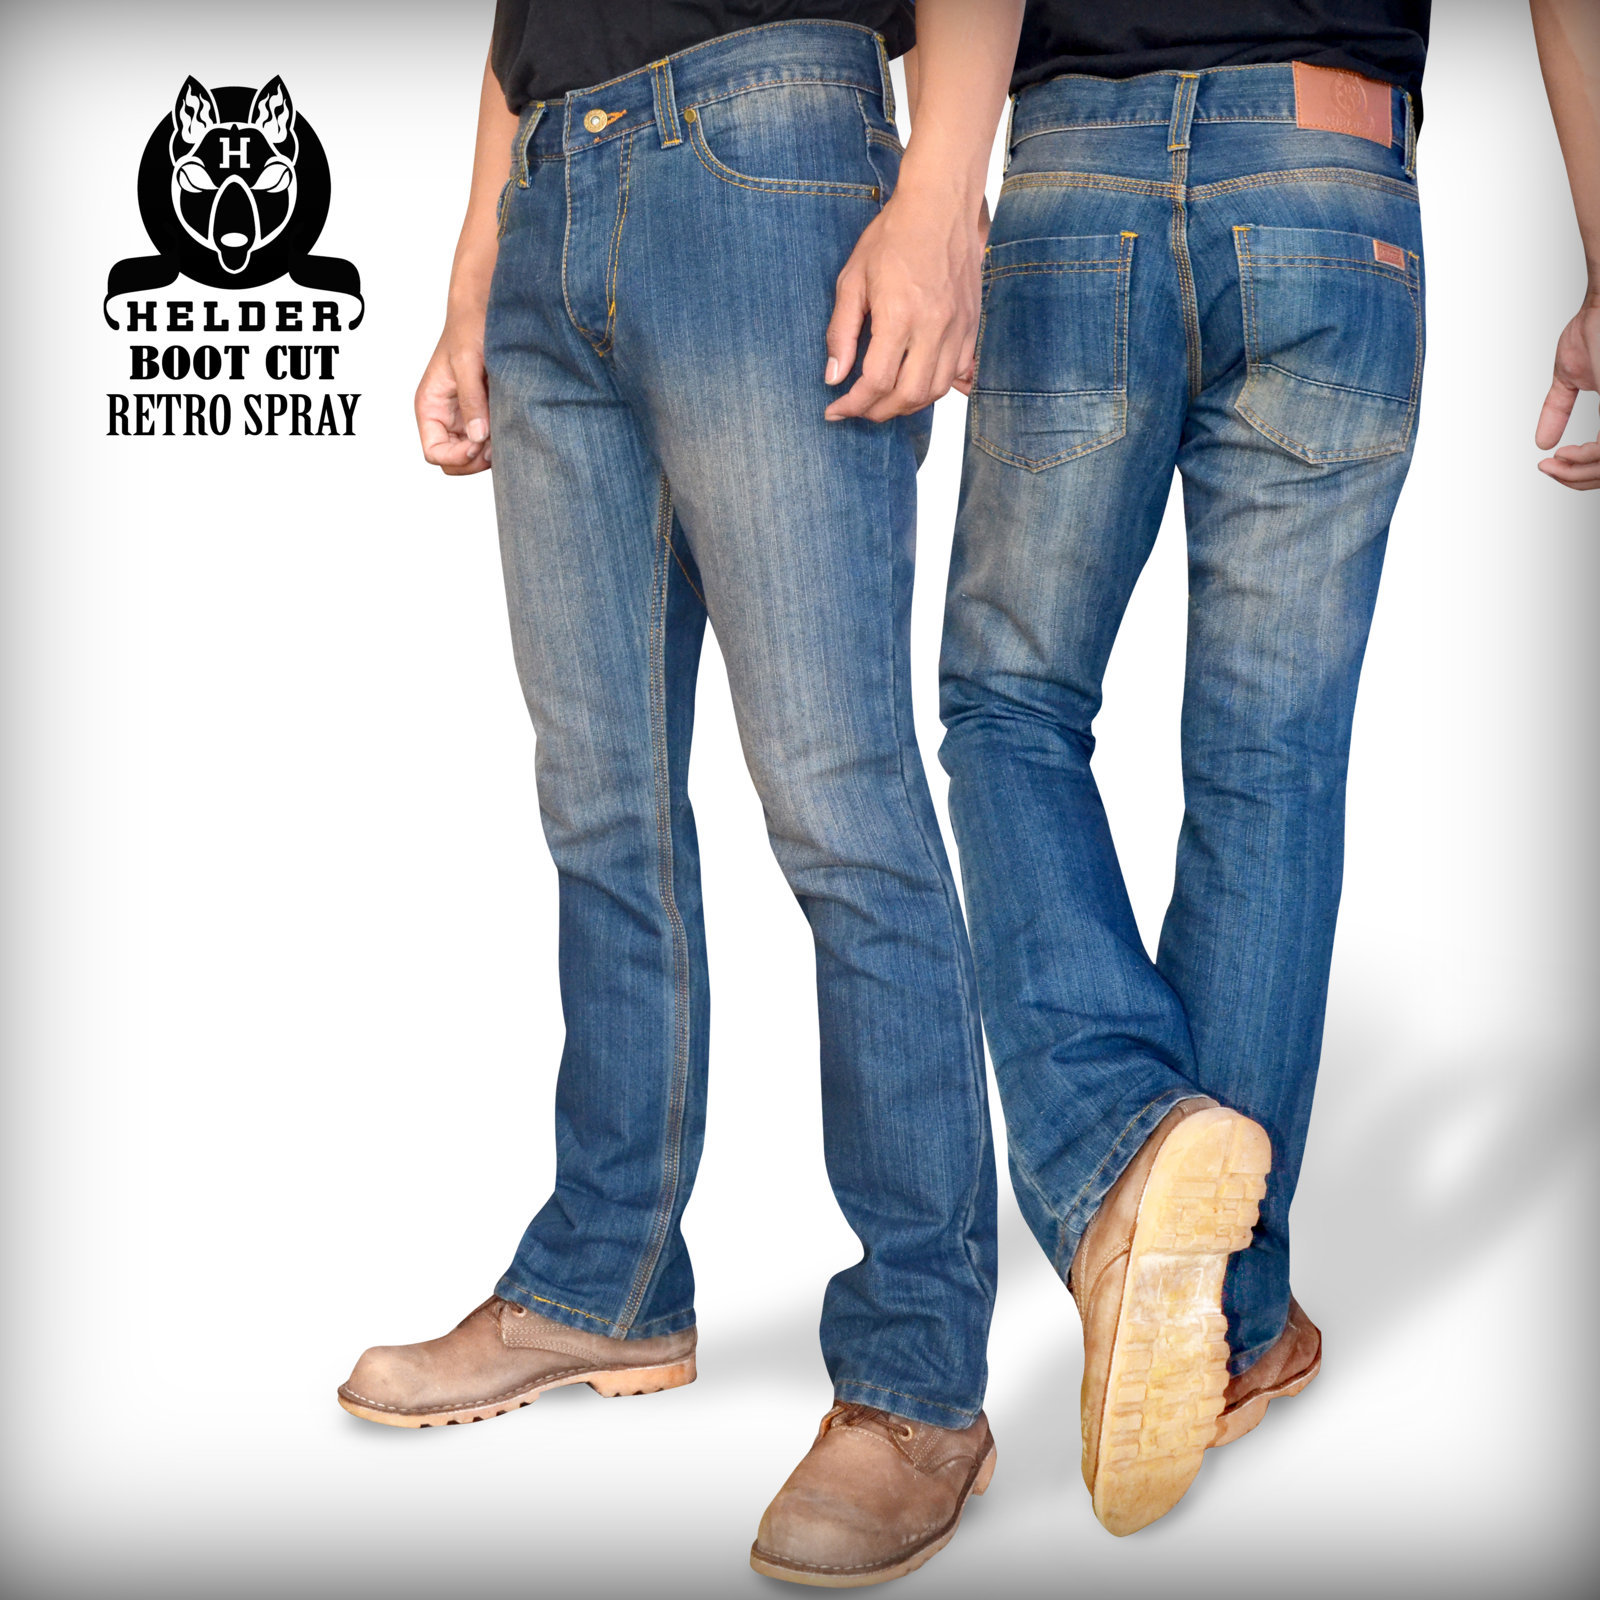 Jual Celana jeans boot cut retro spray - helder denim | Tokopedia